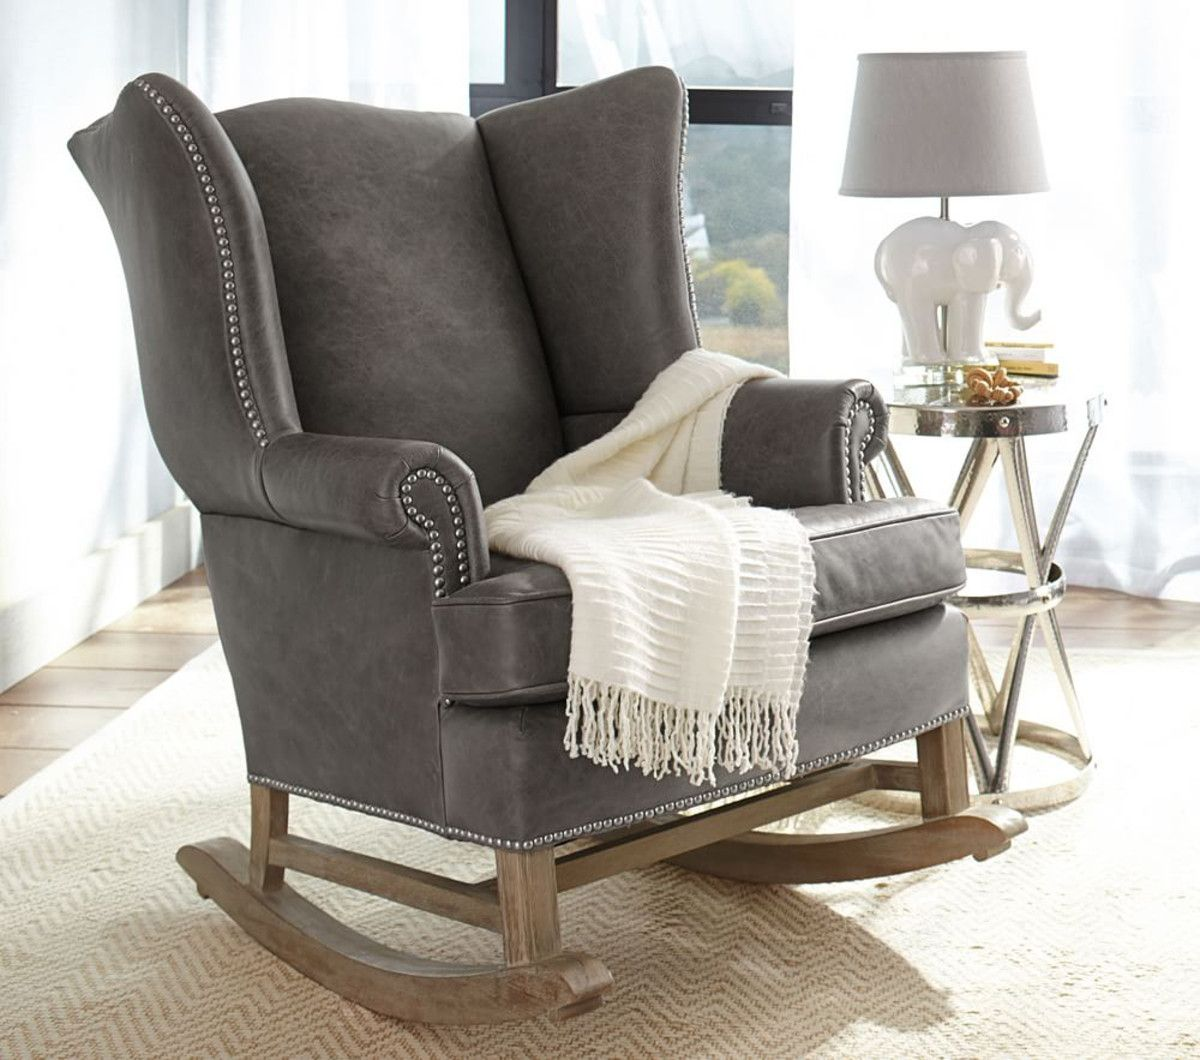 Thatcher Leather Rocker & Ottoman Rocking chair nursery